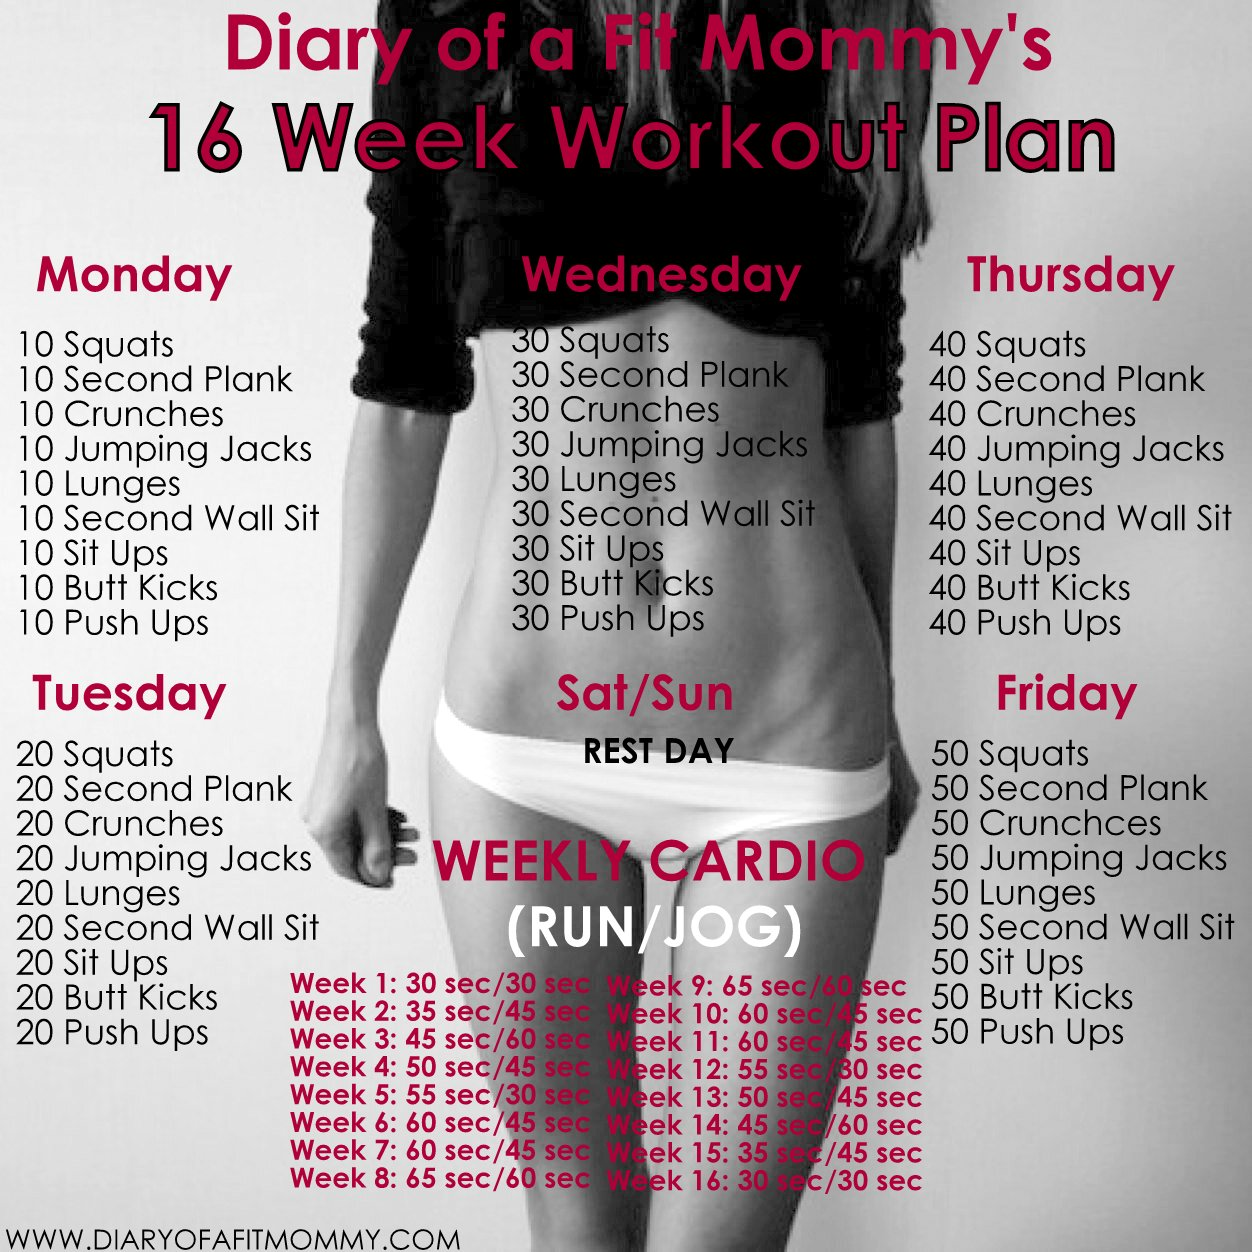 16 Week No Gym Home Workout Plan - Diary of a Fit Mommy